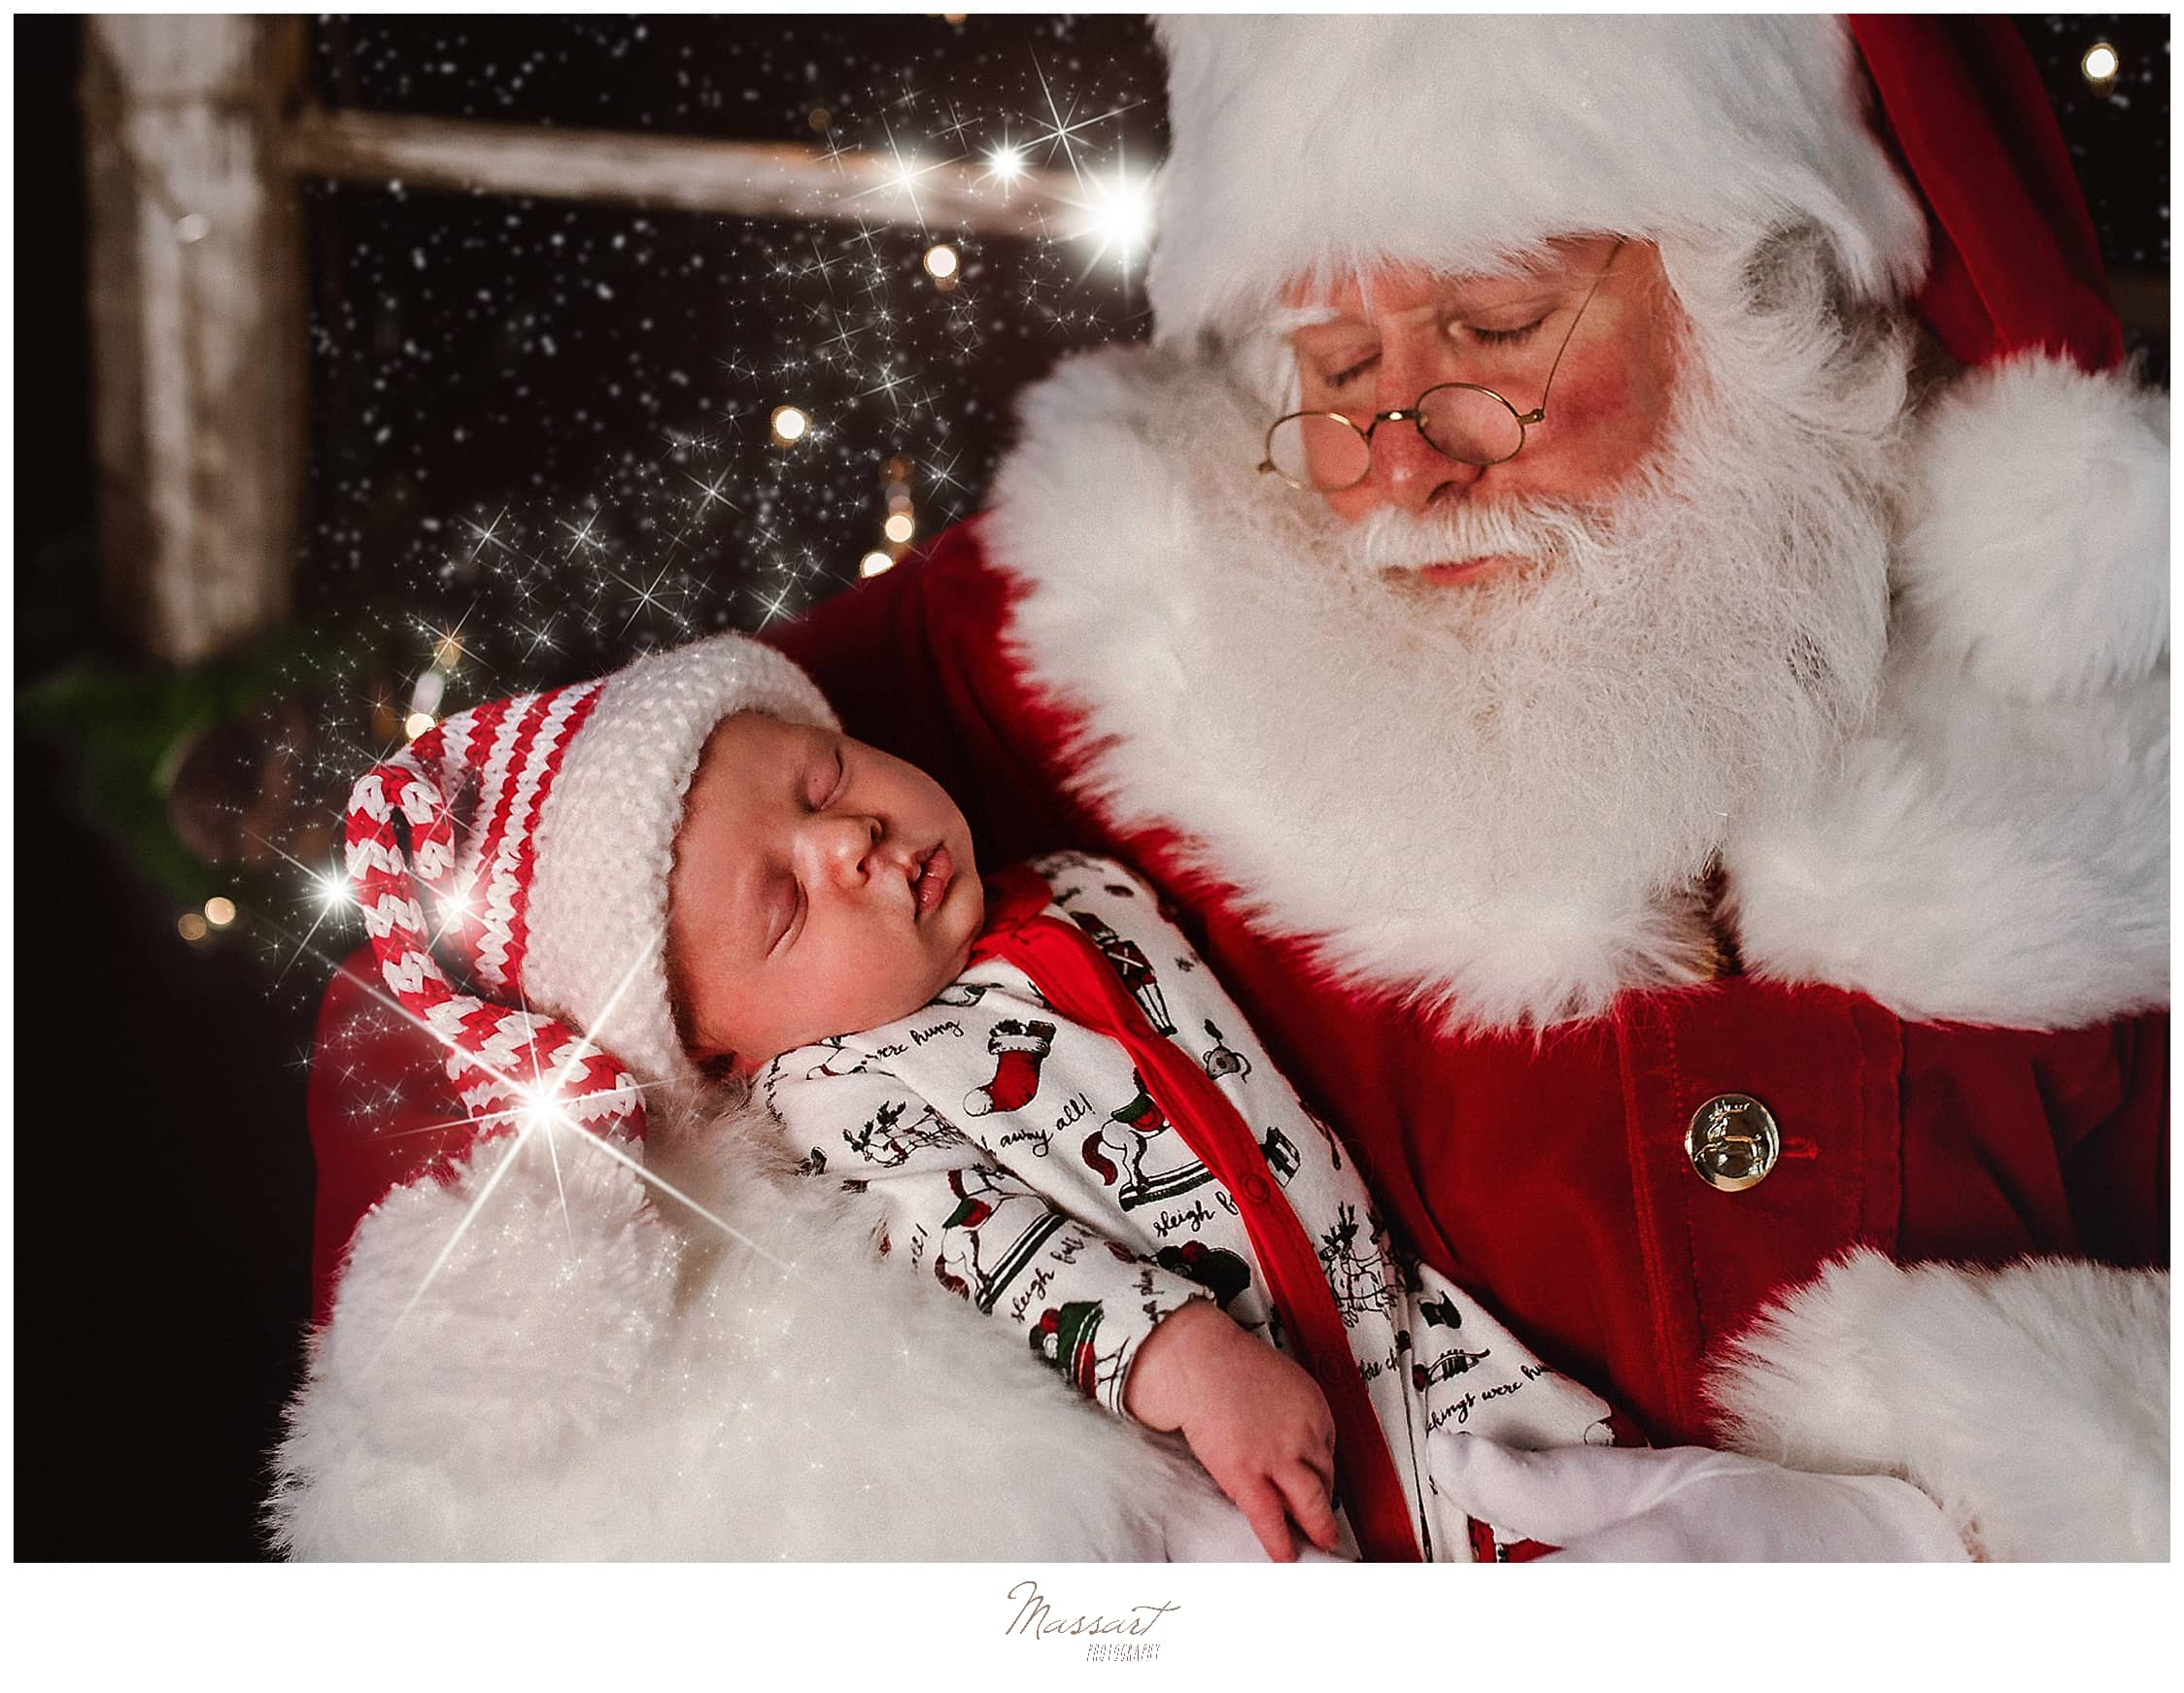 Santa and baby during seasonal special sessions in RI photo studio